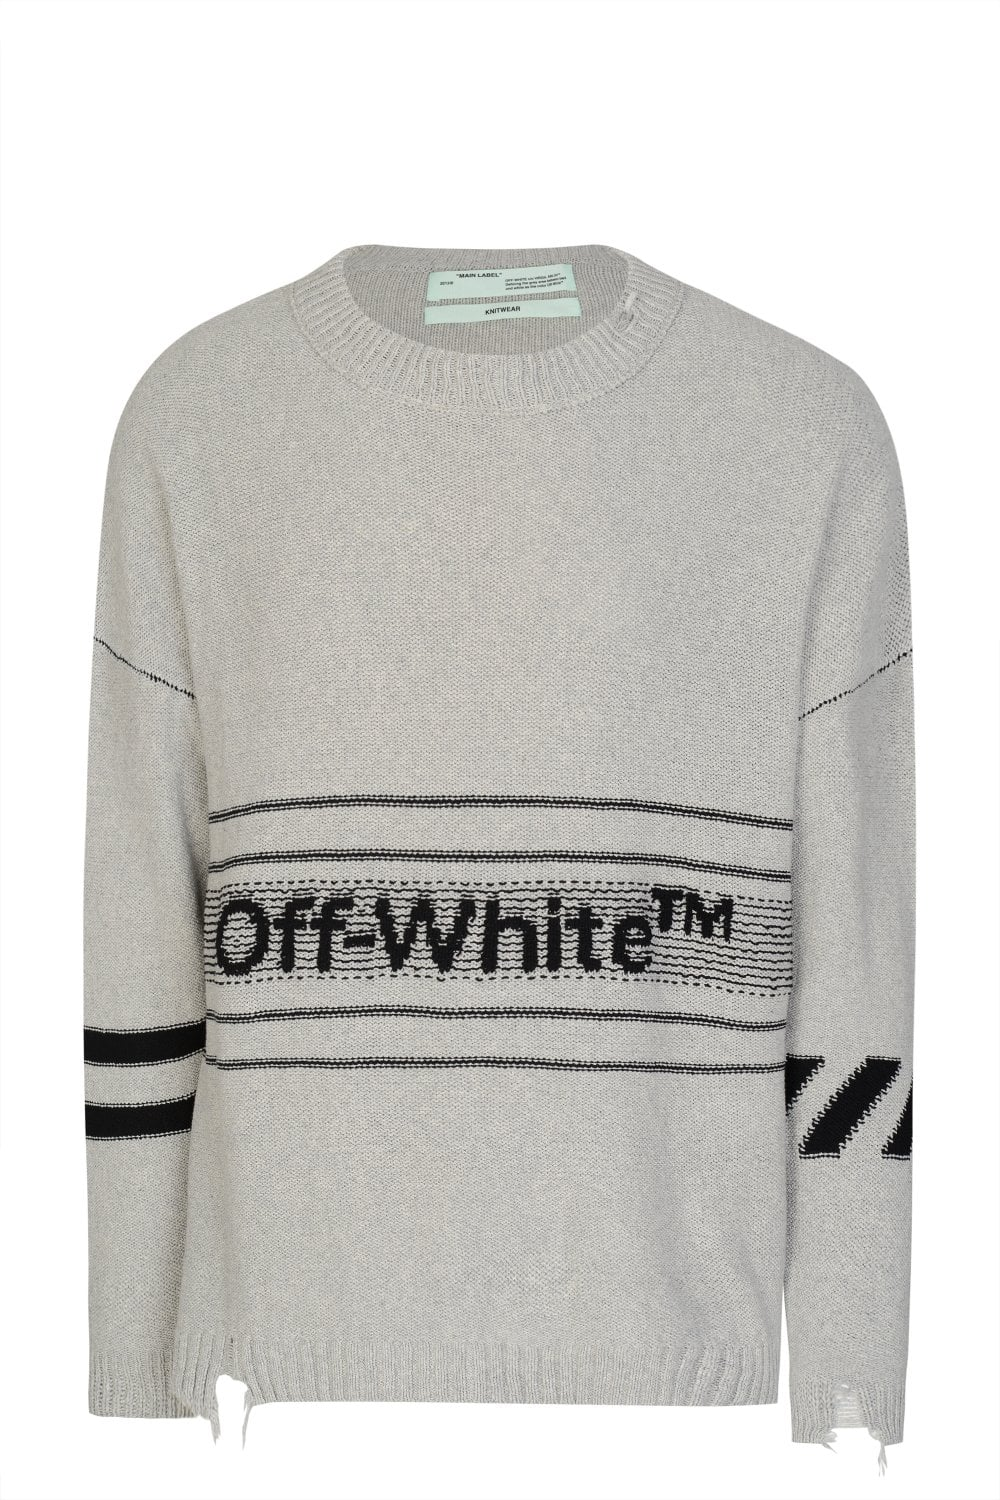 2a02783a49a7 OFF WHITE Off White Round Neck Knitted Jumper - Clothing from Circle ...